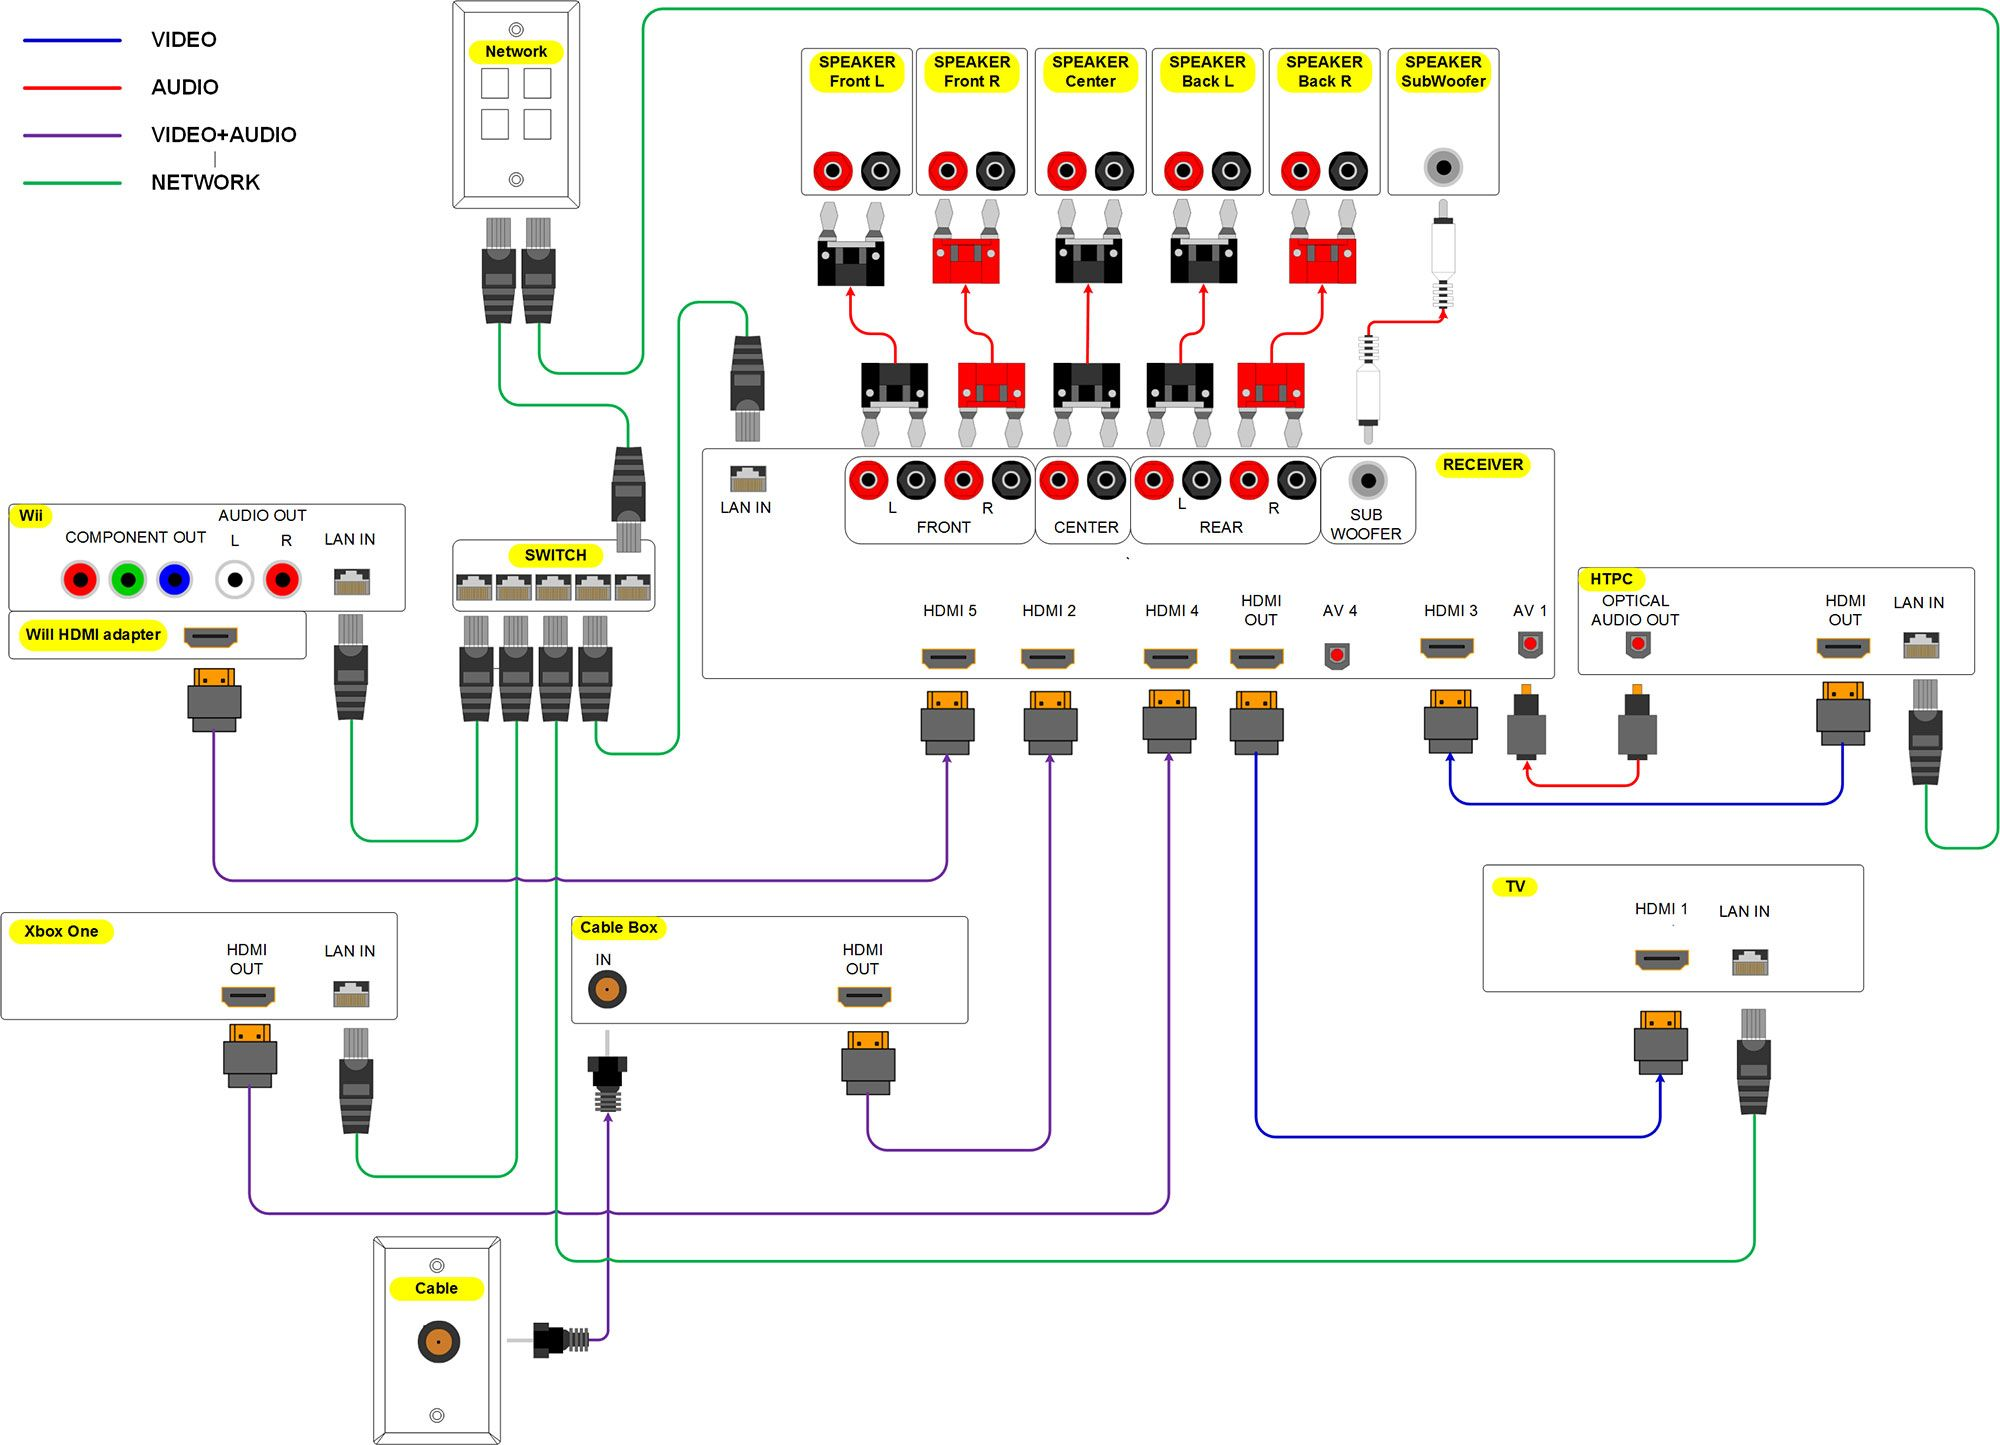 medium resolution of home theater wiring diagram click it to see the big 2000 pixel wide home audio wiring supplies home audio wiring